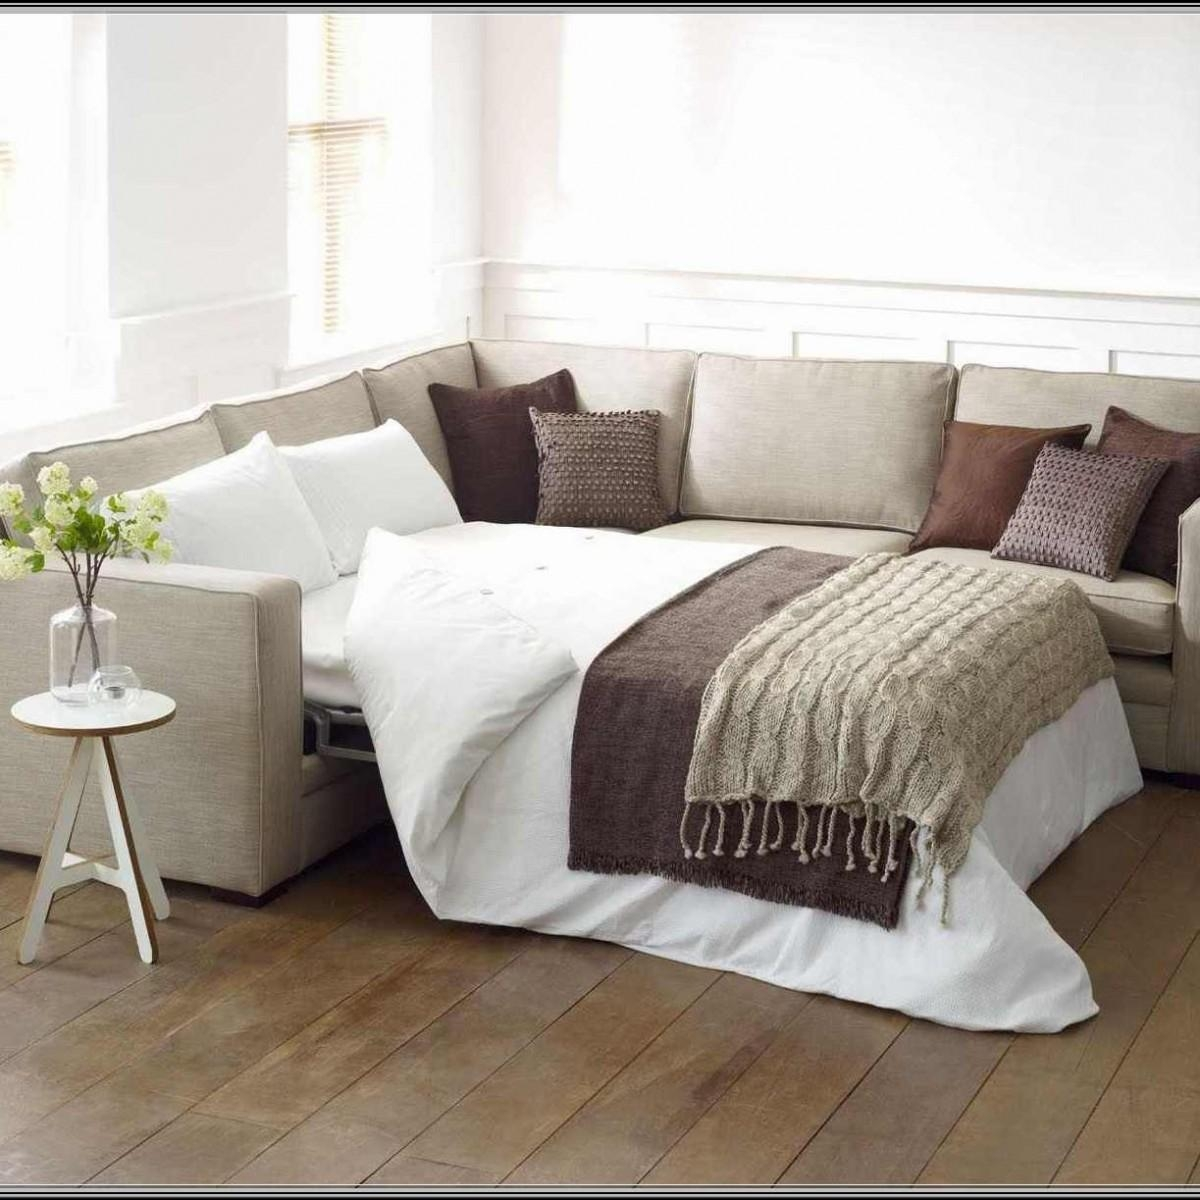 Fantastic Sleeper Sectional Sofa For Small Spaces #2376 Inside Sectional Sofas In Small Spaces (Image 10 of 20)